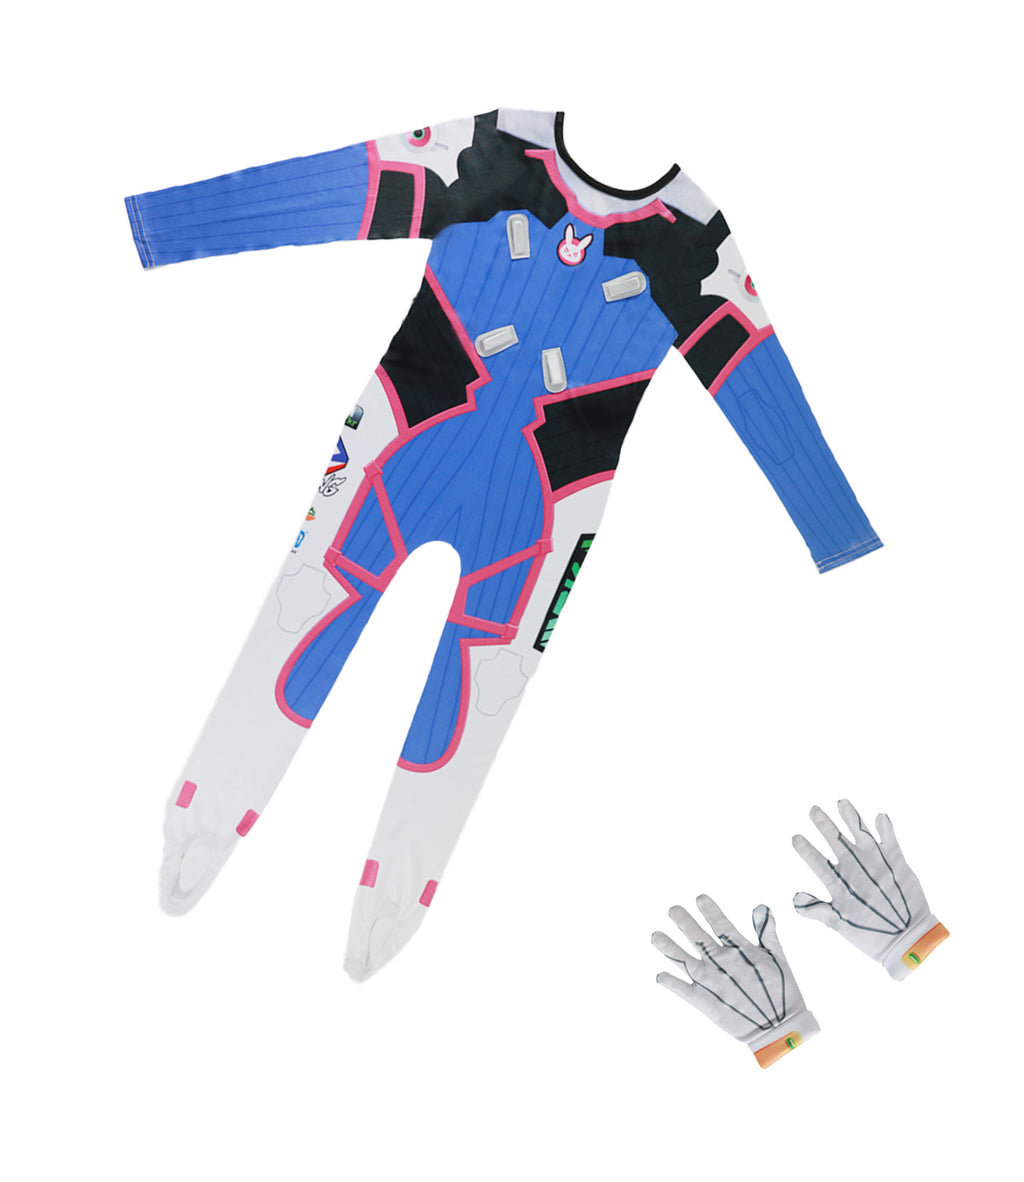 Overwatch Kids Size D.Va Jumpsuit Bunny Girl Cosplay Bodysuit Game Anime Costume Dress-up with Gloves for Kids Pink